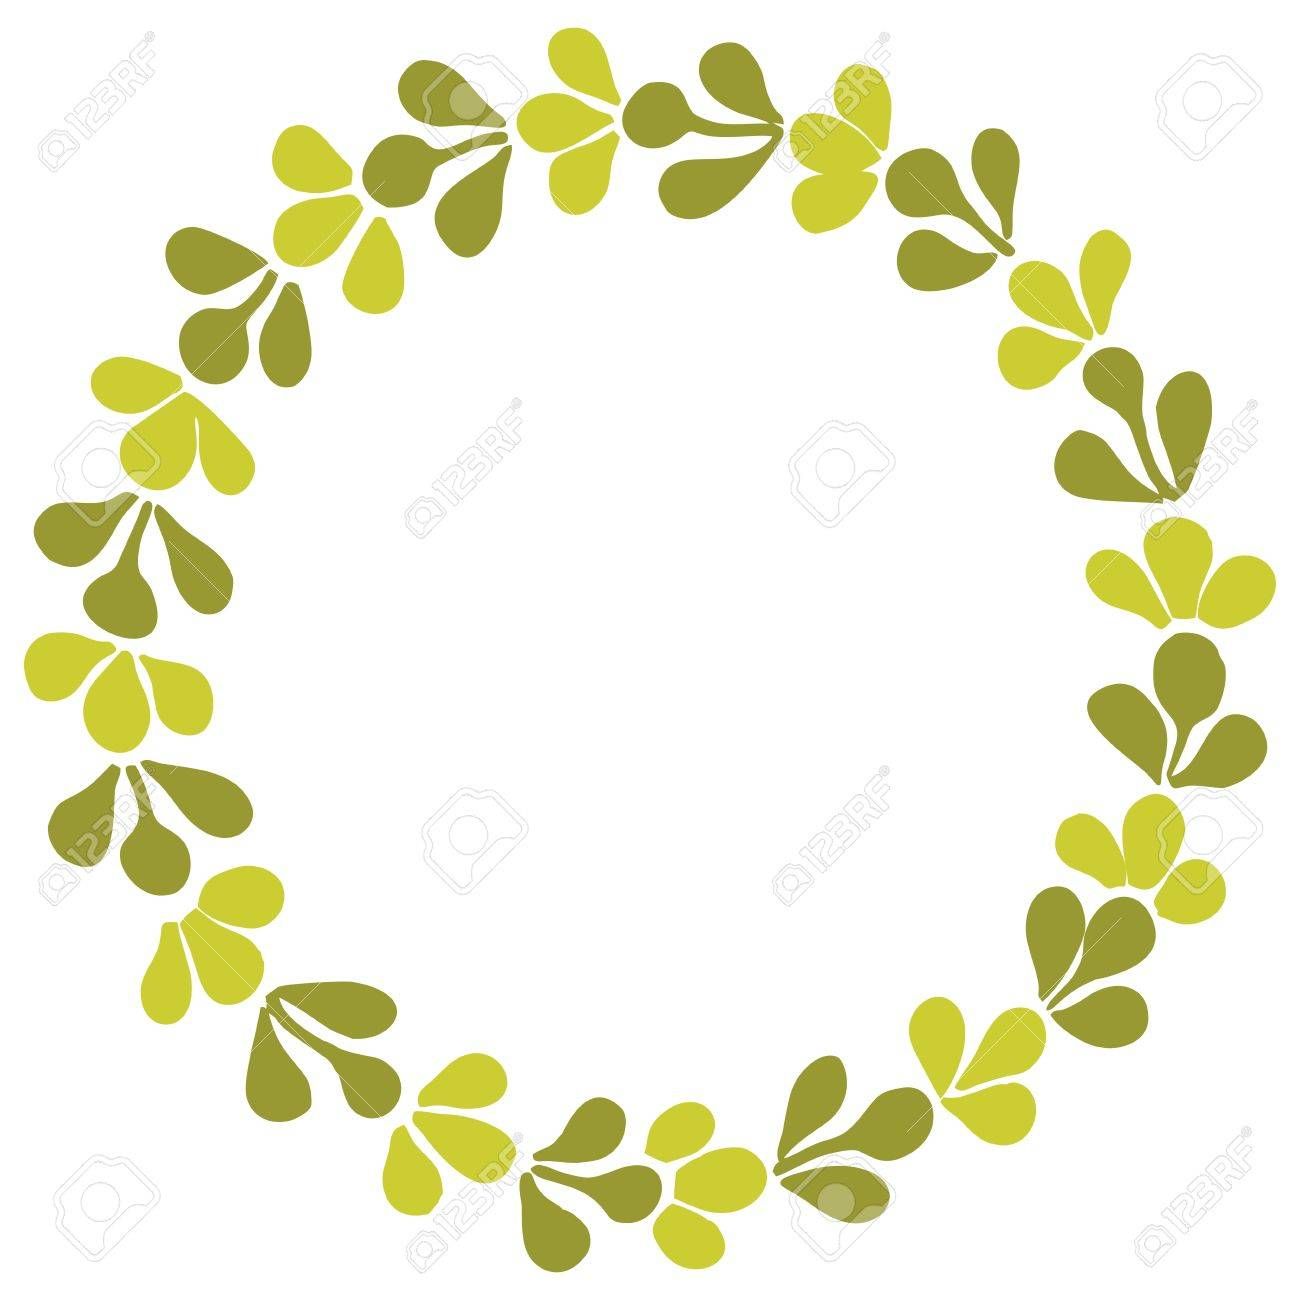 green laurel wreath vector frame isolated on white background rh 123rf com free vector frame download free vector frame corners